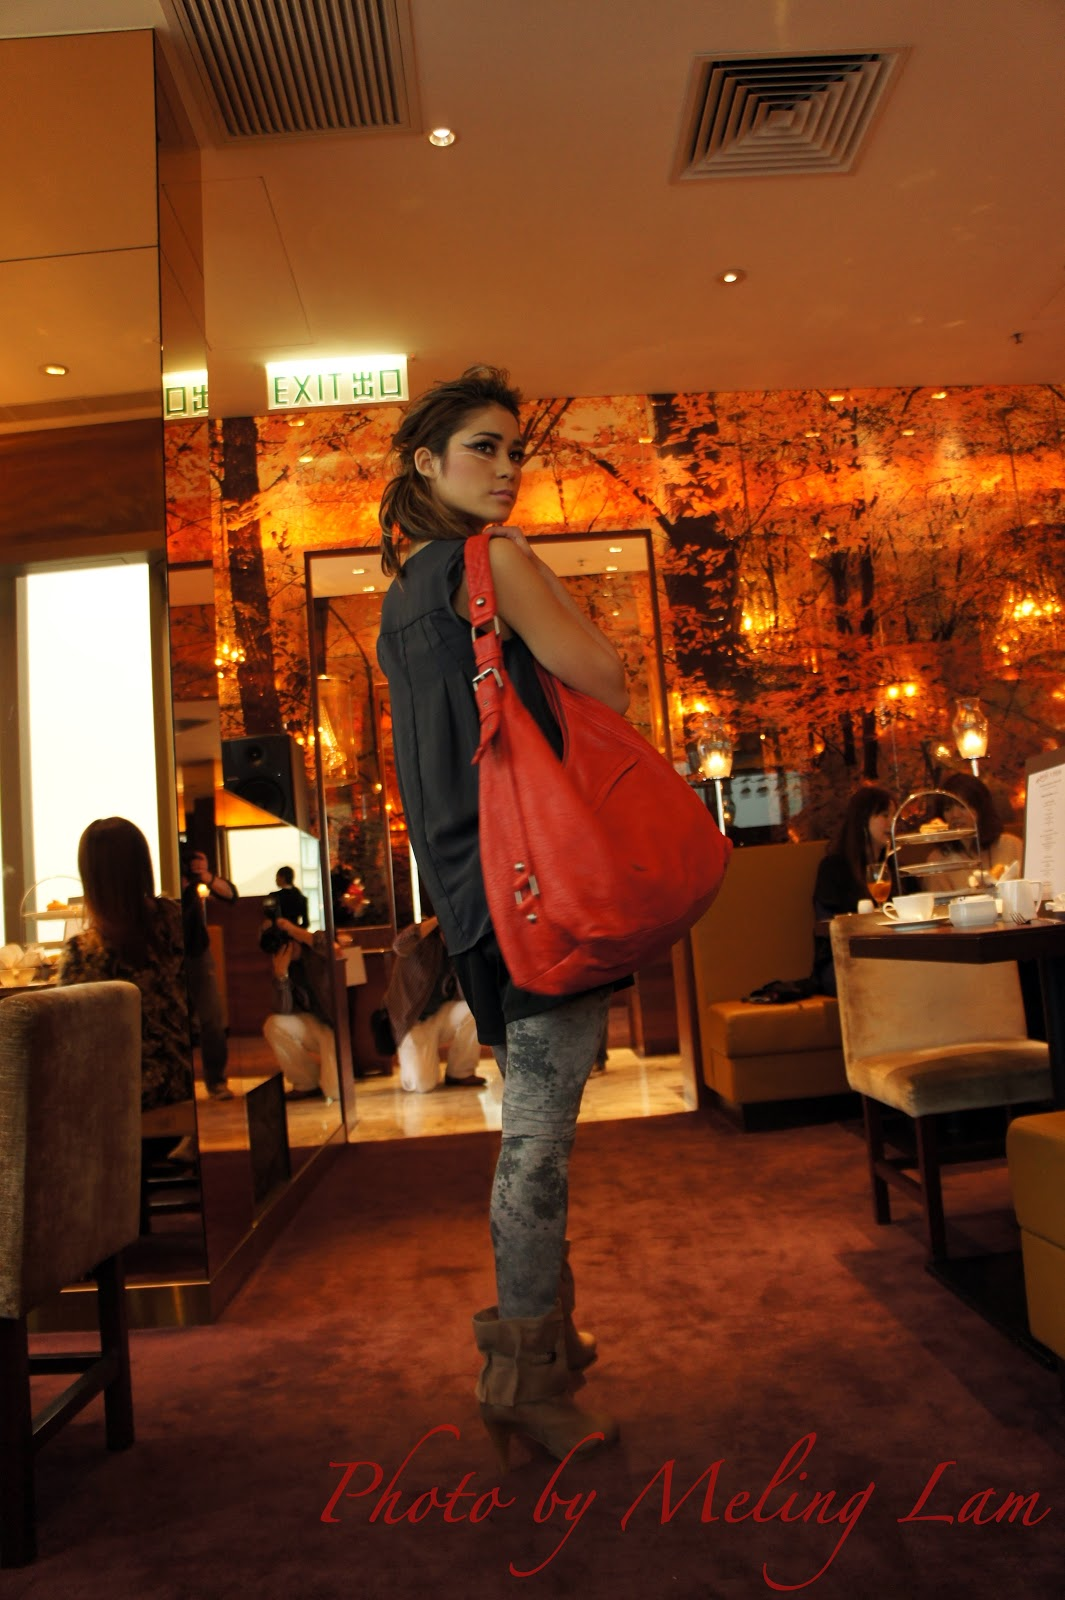 sony nex-3 pink test camera photo 測試 hotel panorama enigma fashion show high tea